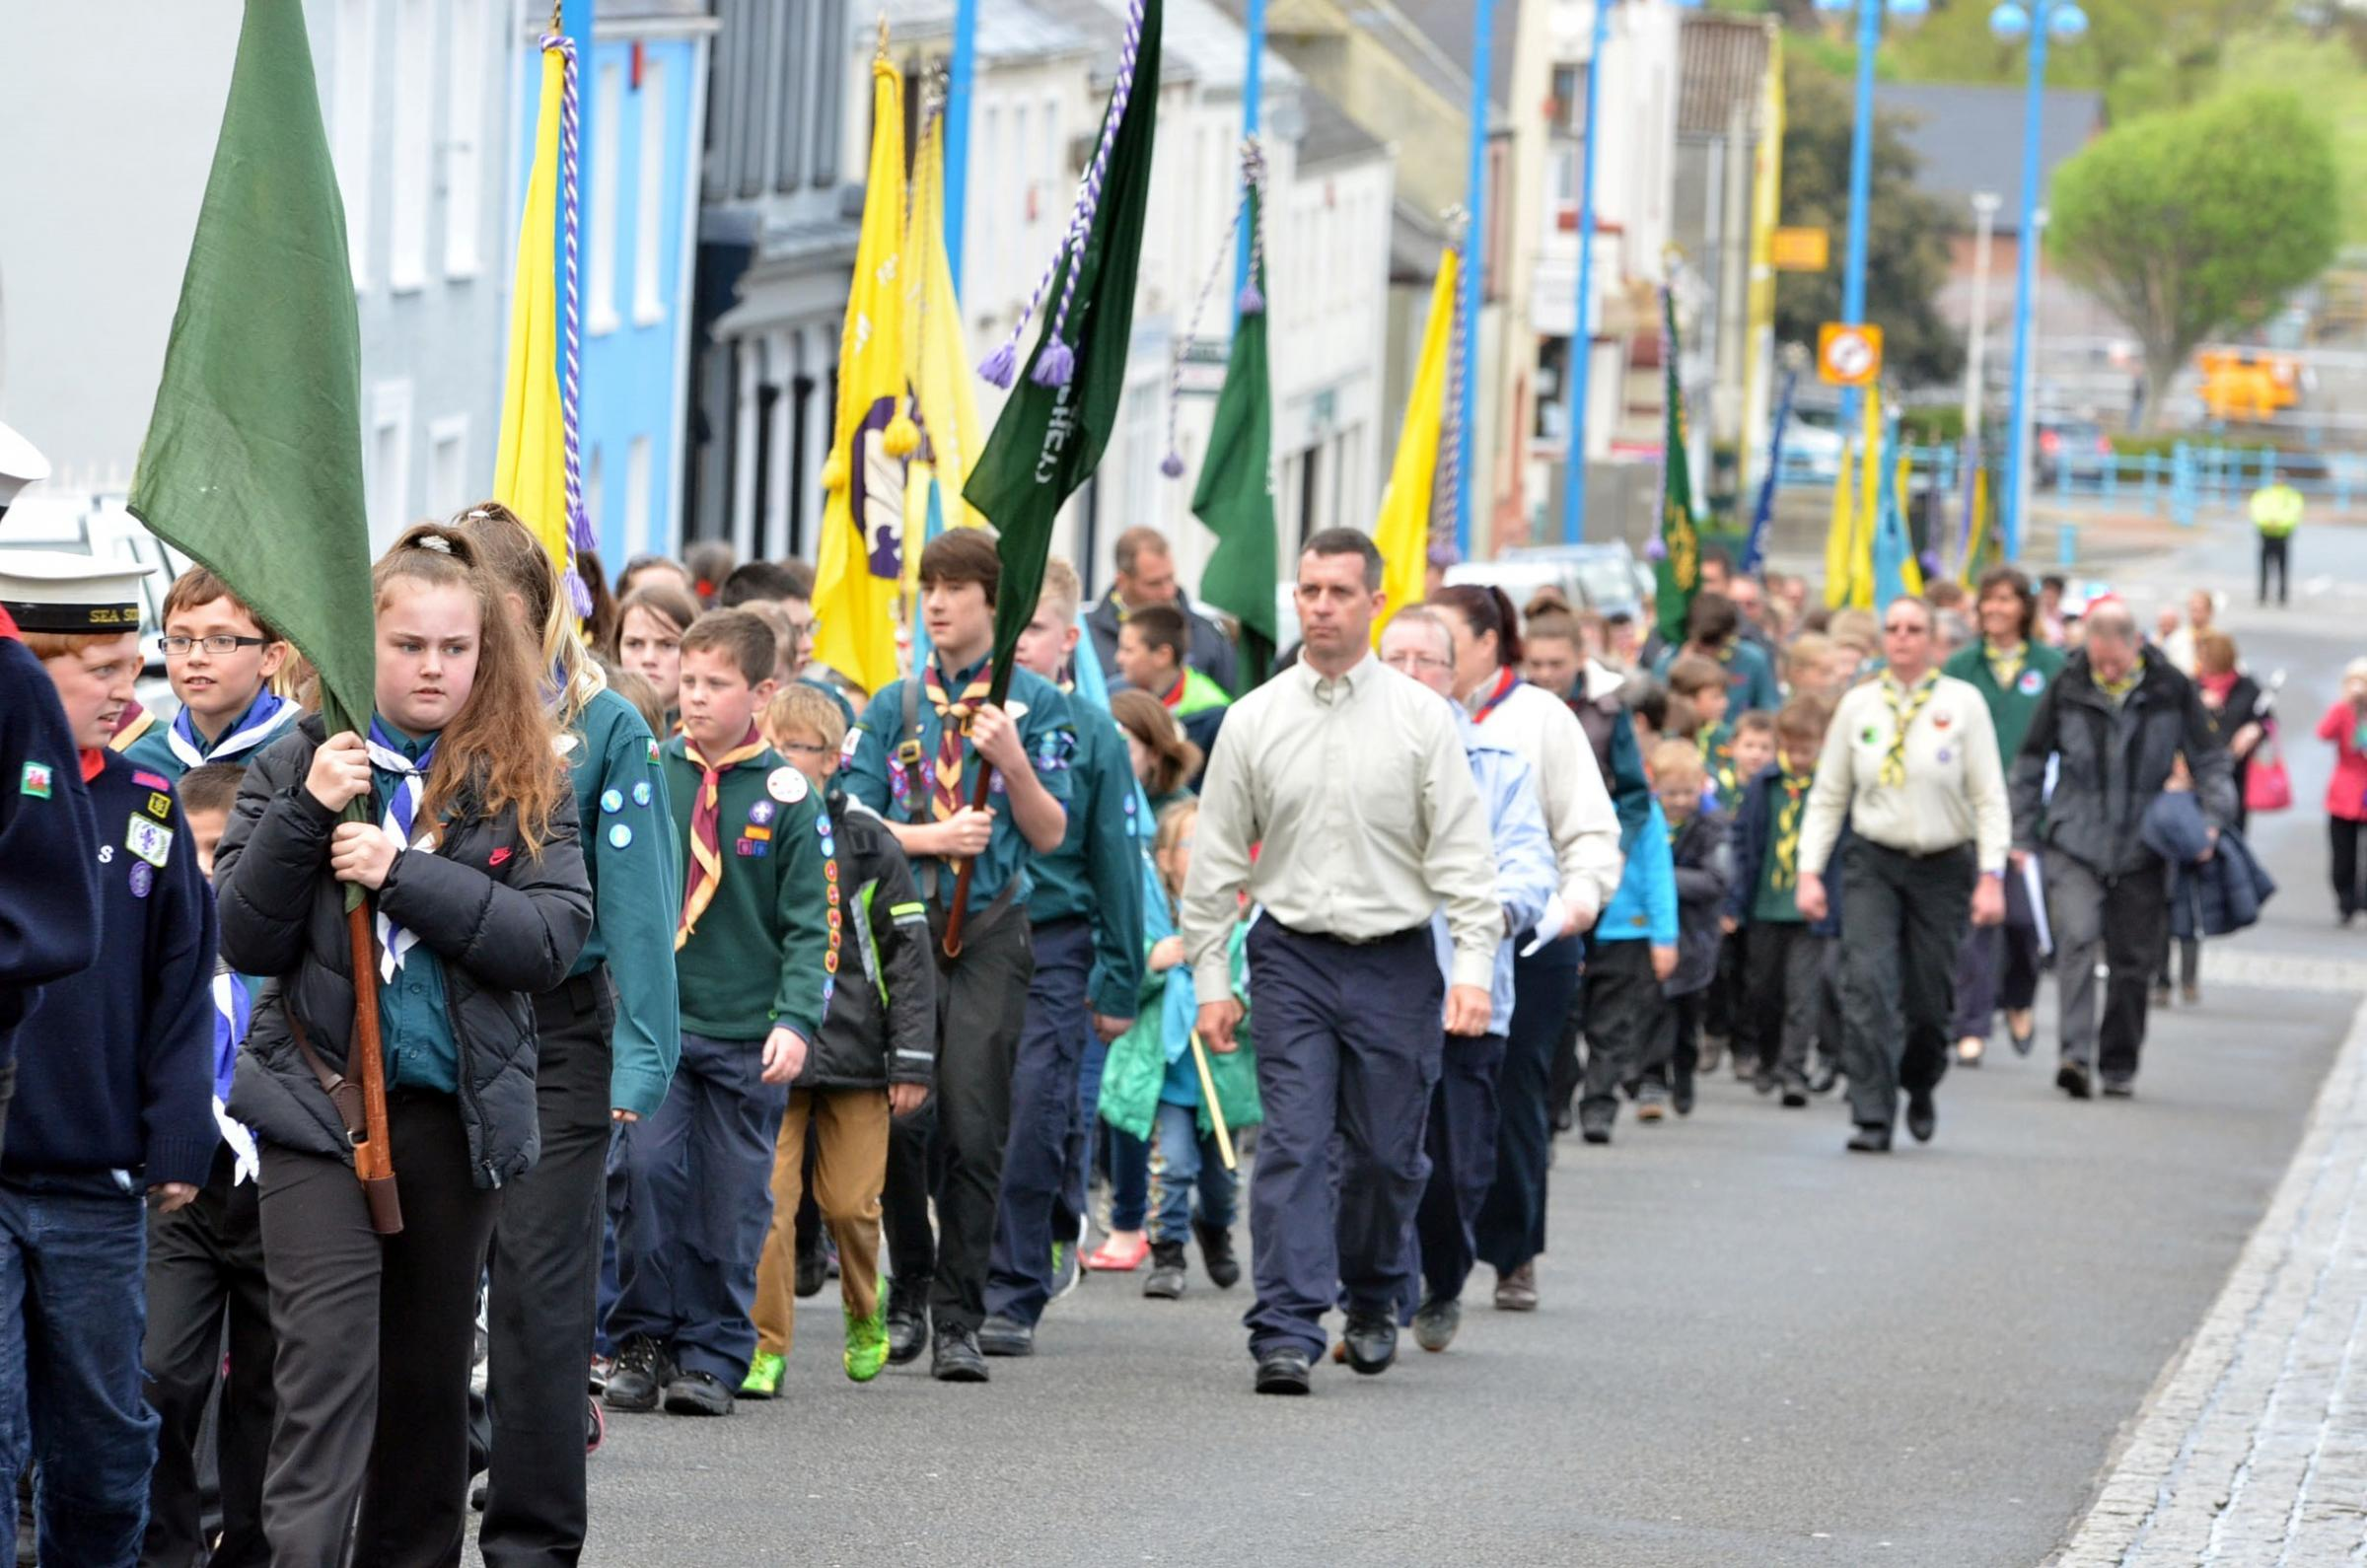 Pembroke Dock chosen to host scouts annual parade